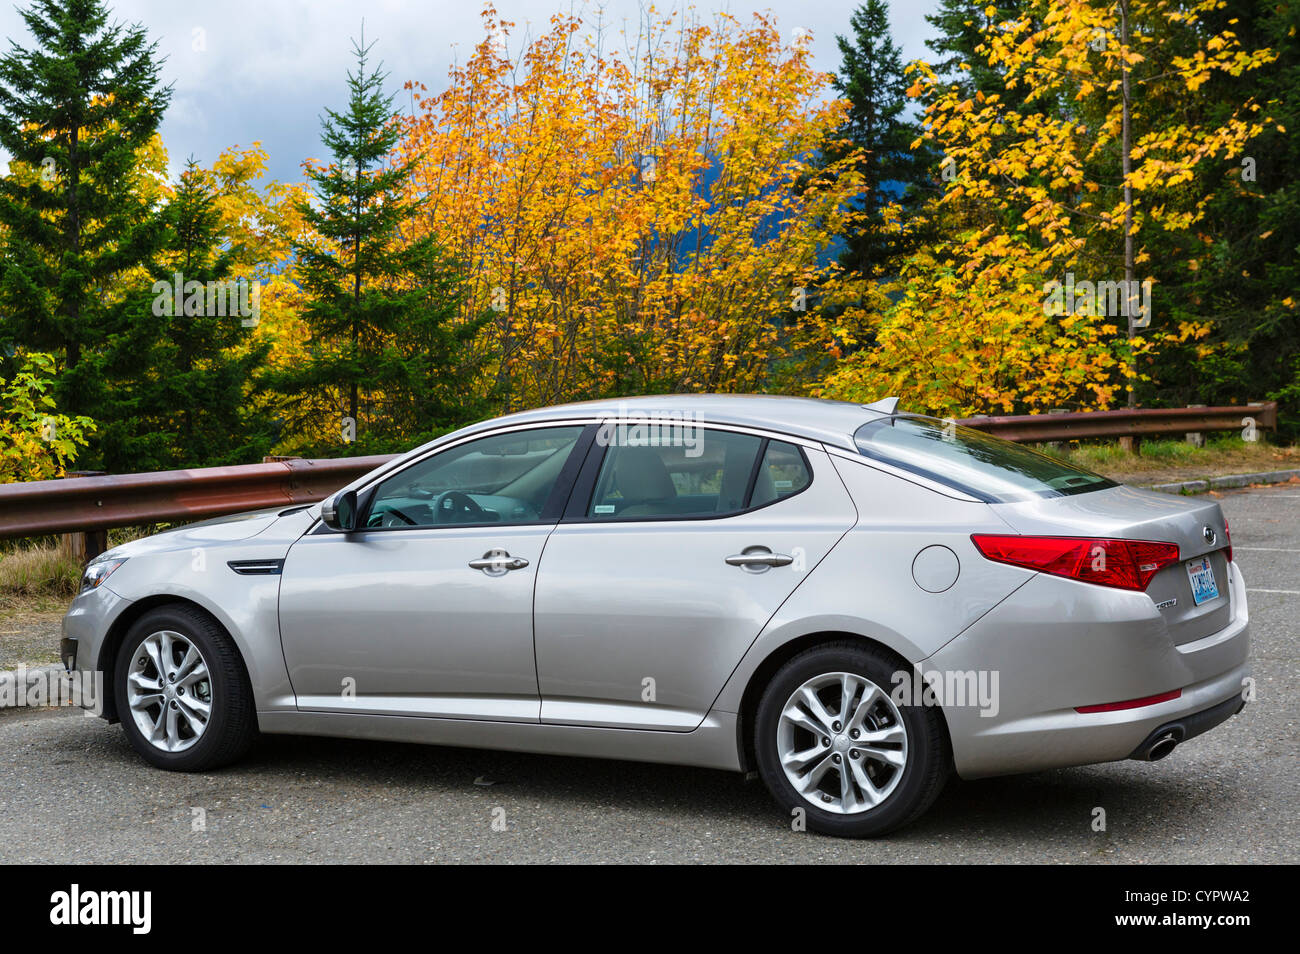 Un modelo de coche KIA Optima 2012, estado de Washington, EE.UU. Imagen De Stock